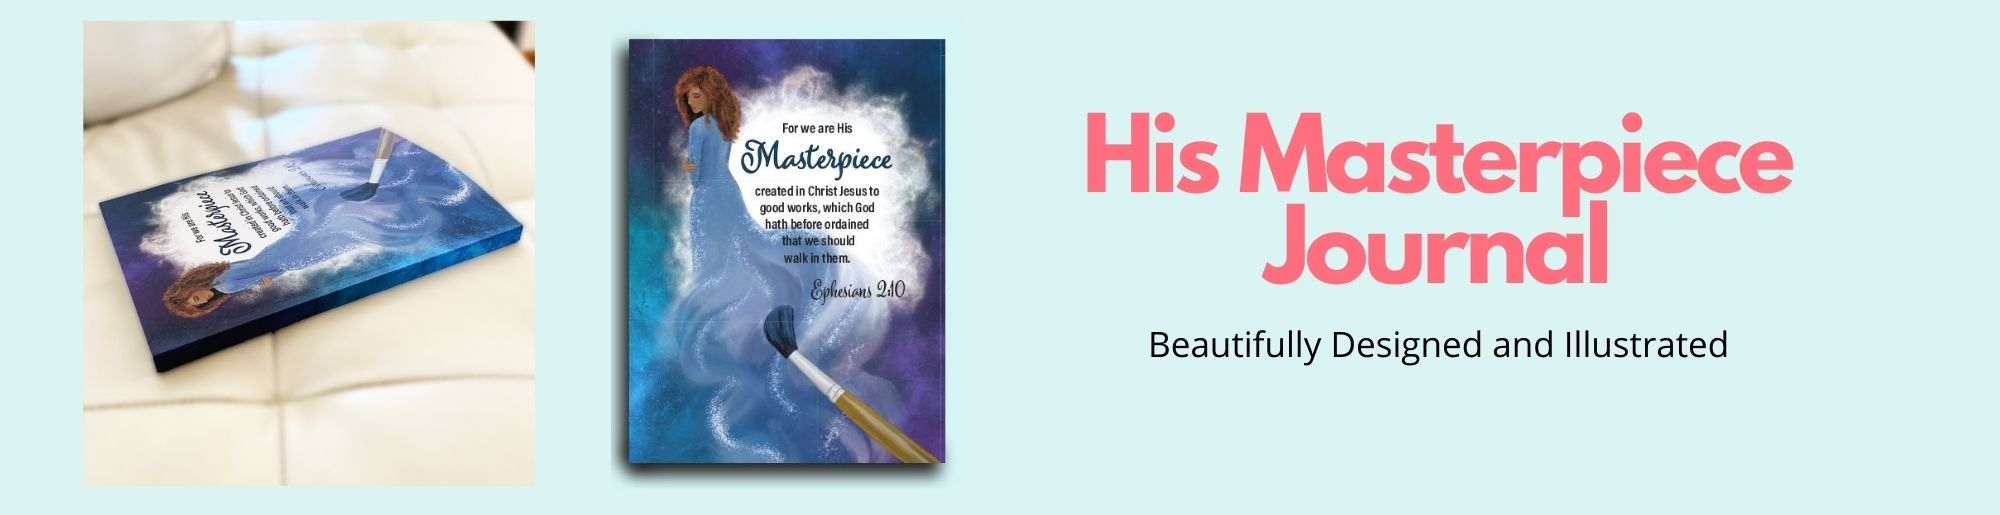 his masterpiece journal